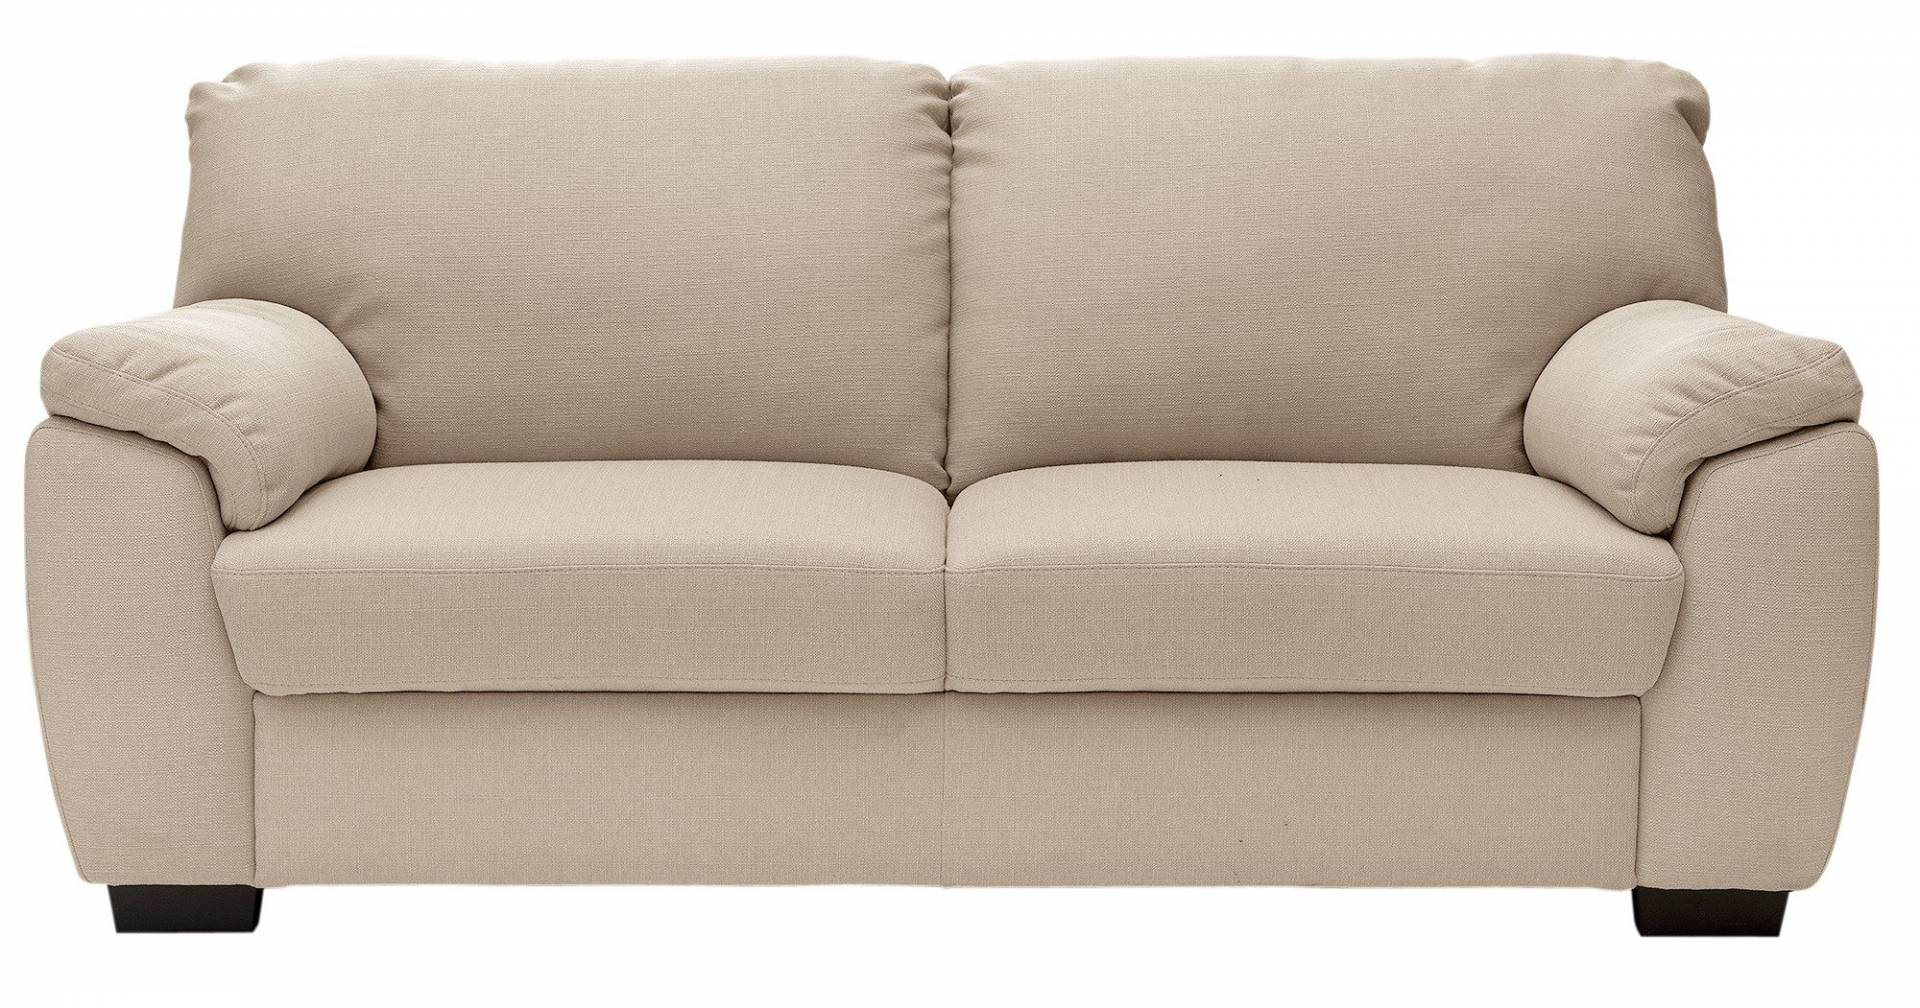 Collection - Milano 3 Seater Fabric Sofa - Mink from The Collection by Argos